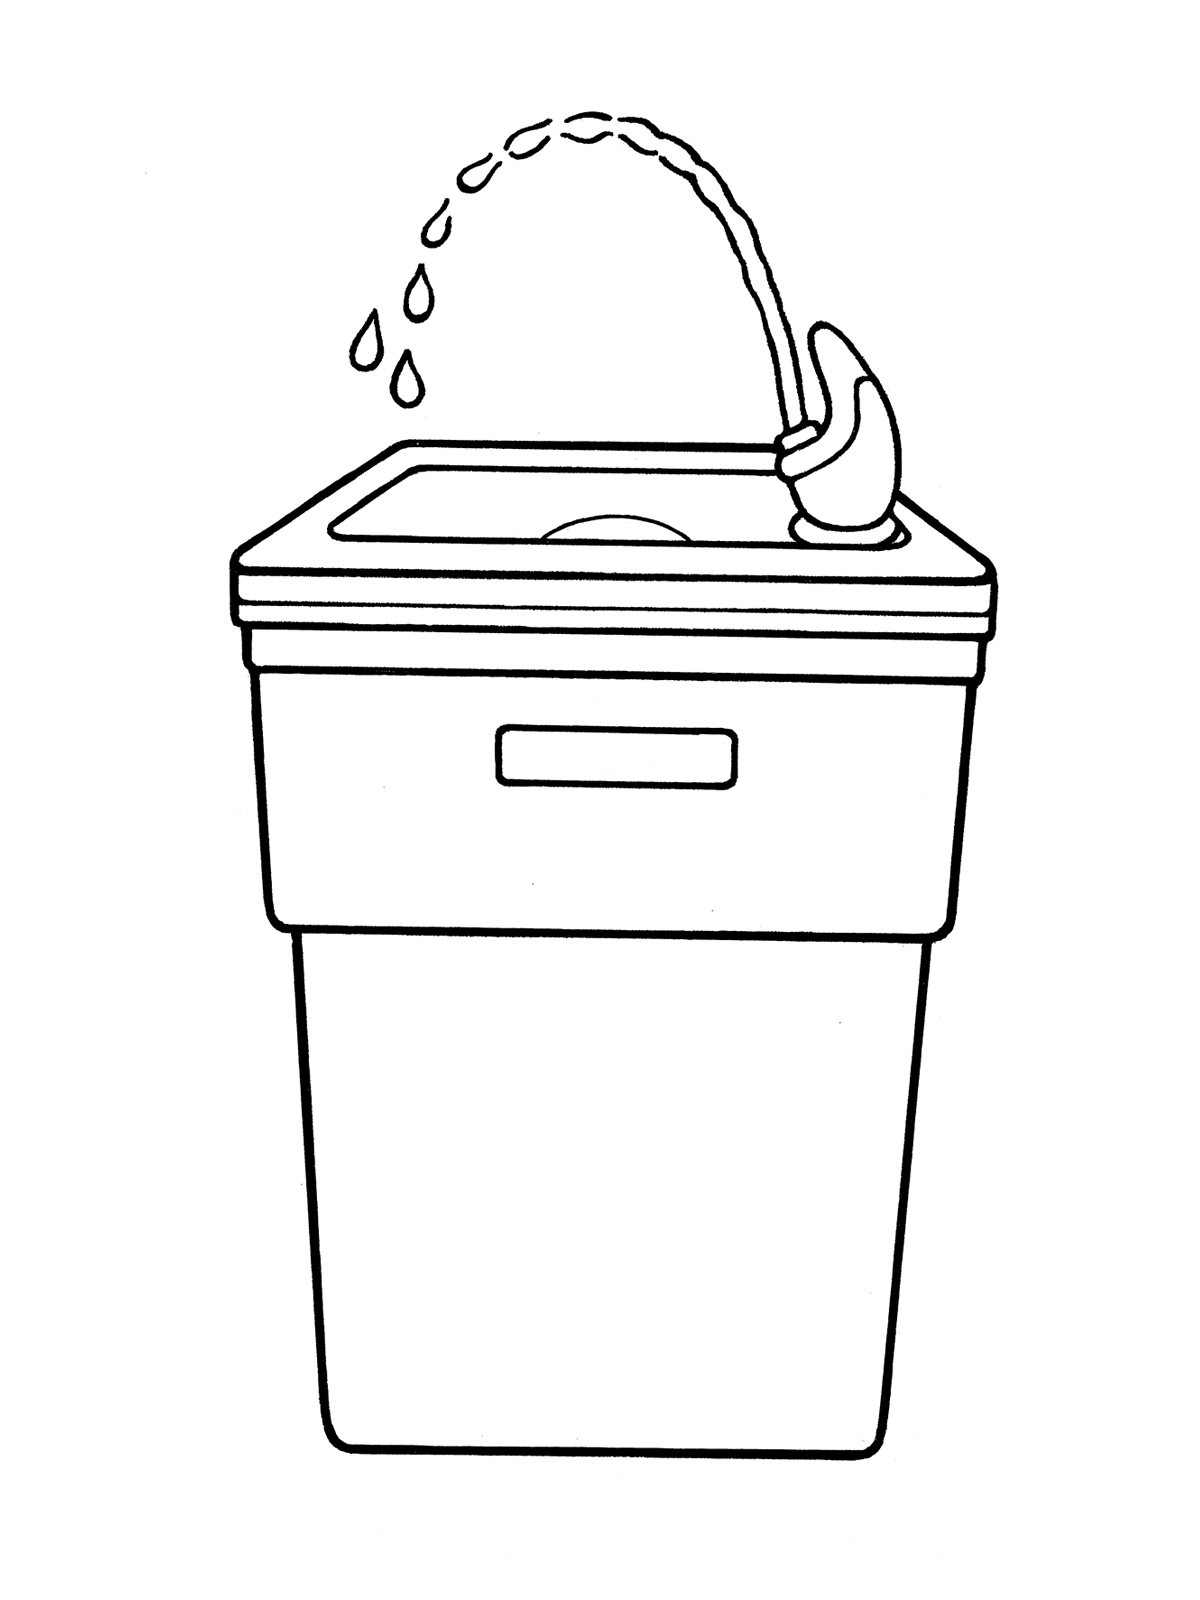 Water Fountain Clipart Black And White.